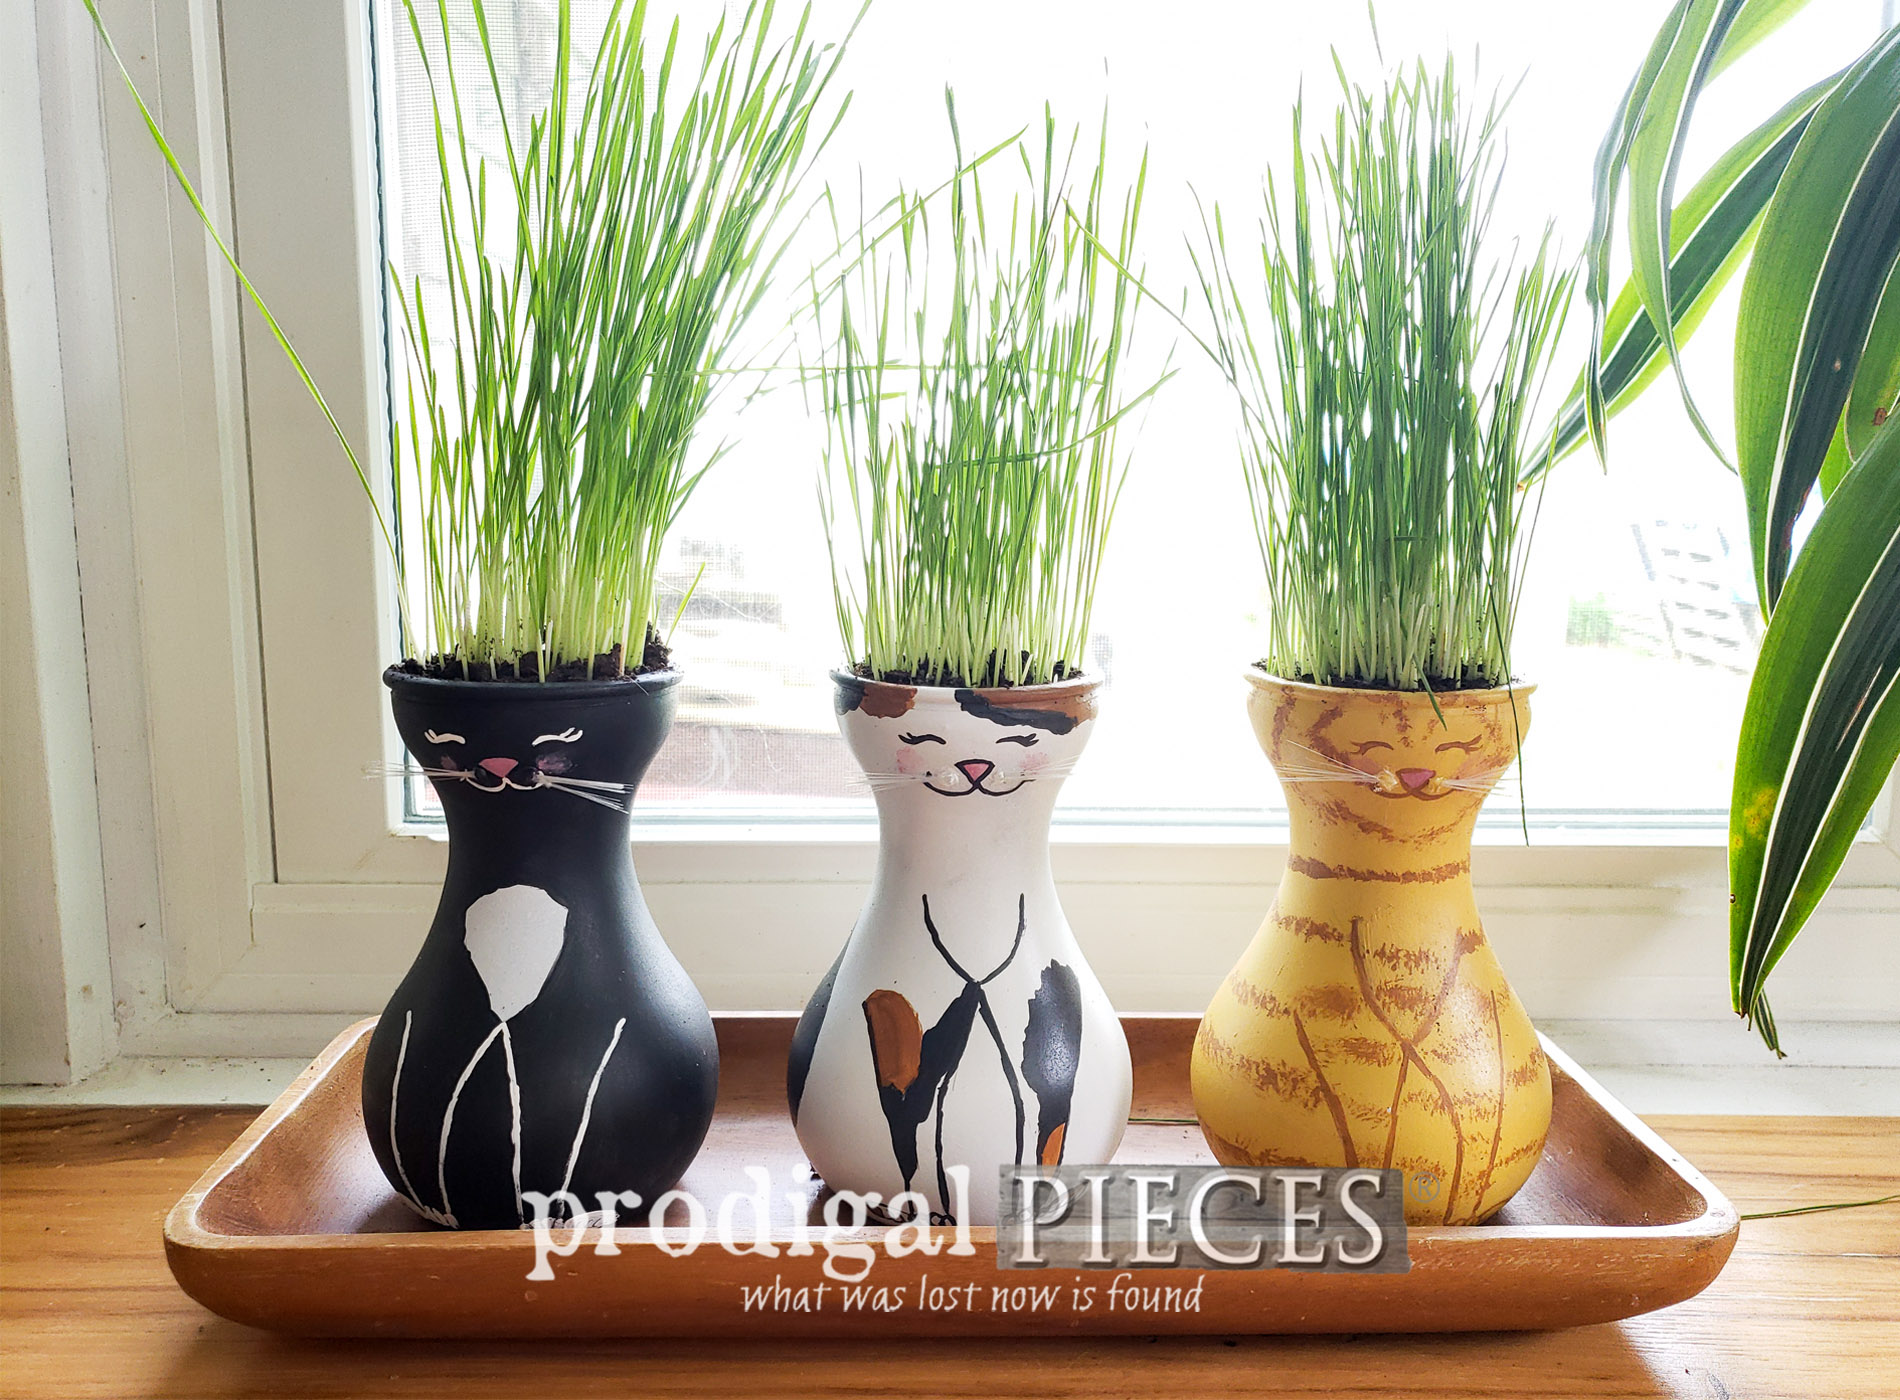 Featured DIY Cat Grass Tutorial for Cats, Dogs, & People Too | Video Tutorial at Prodigal Pieces | prodigalpieces.com #prodigalpieces #diy #home #handmade #pets #cats #dogs #pethealth